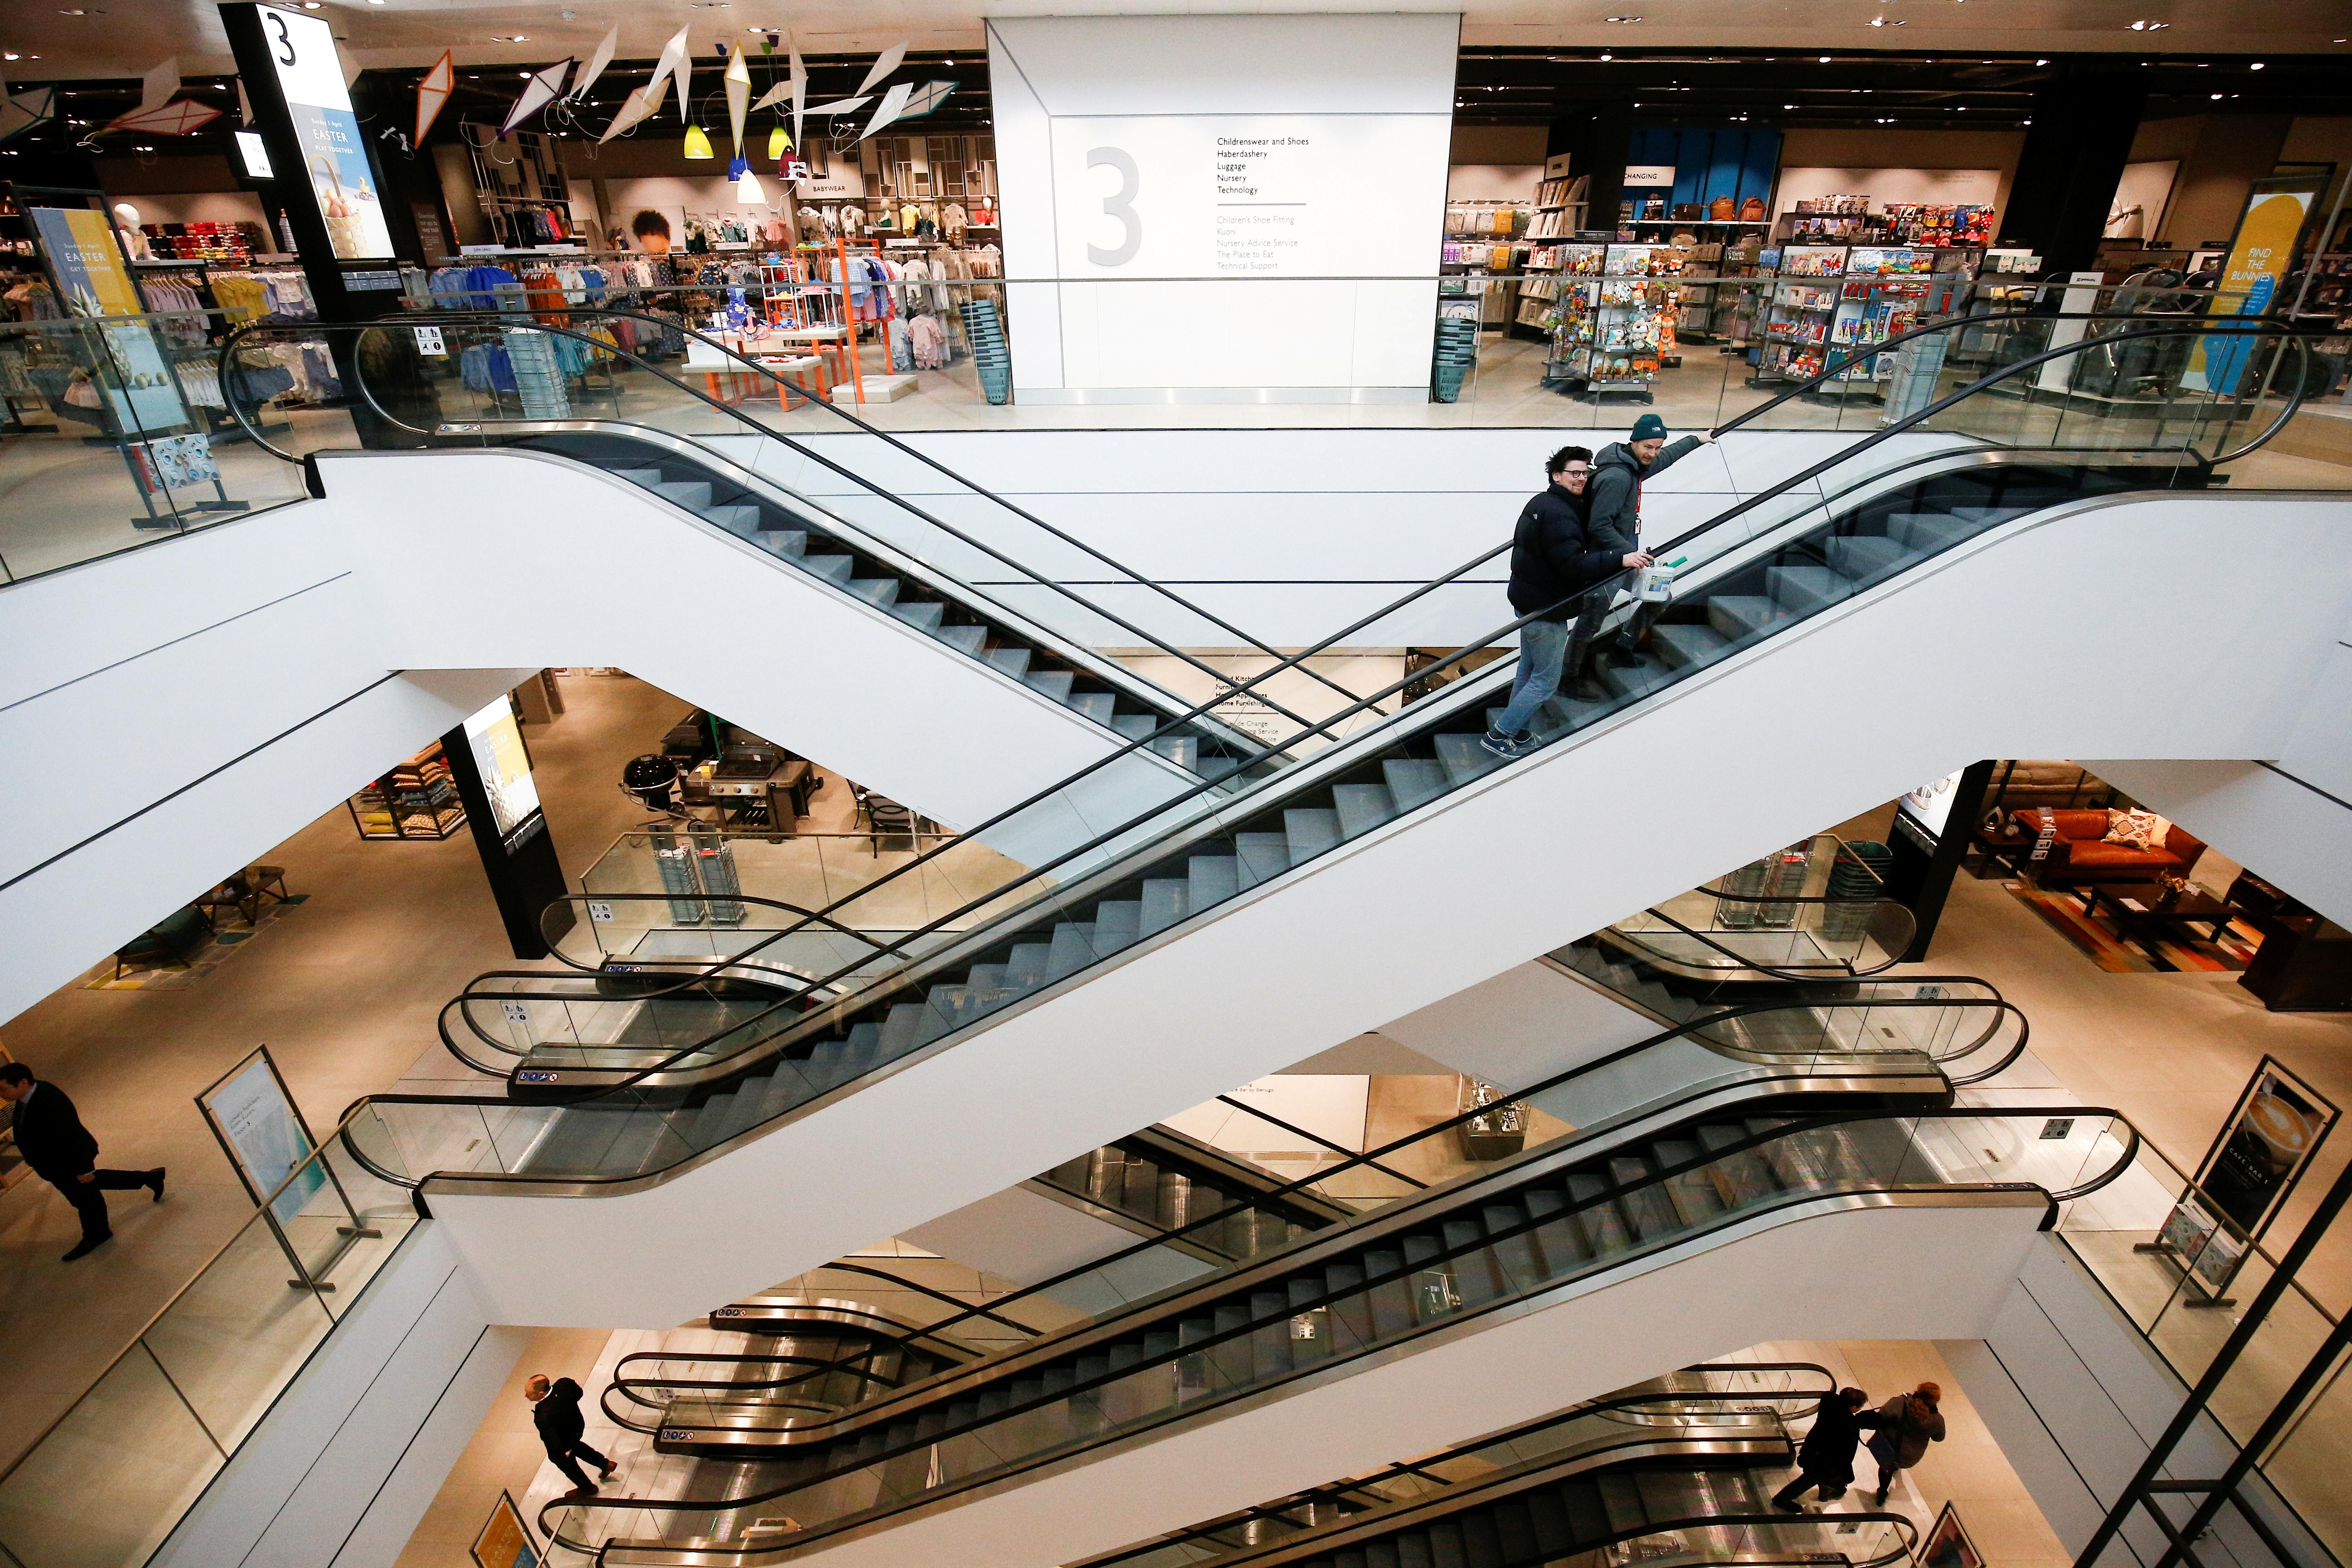 UK retail sales growth softens as department stores disappoint